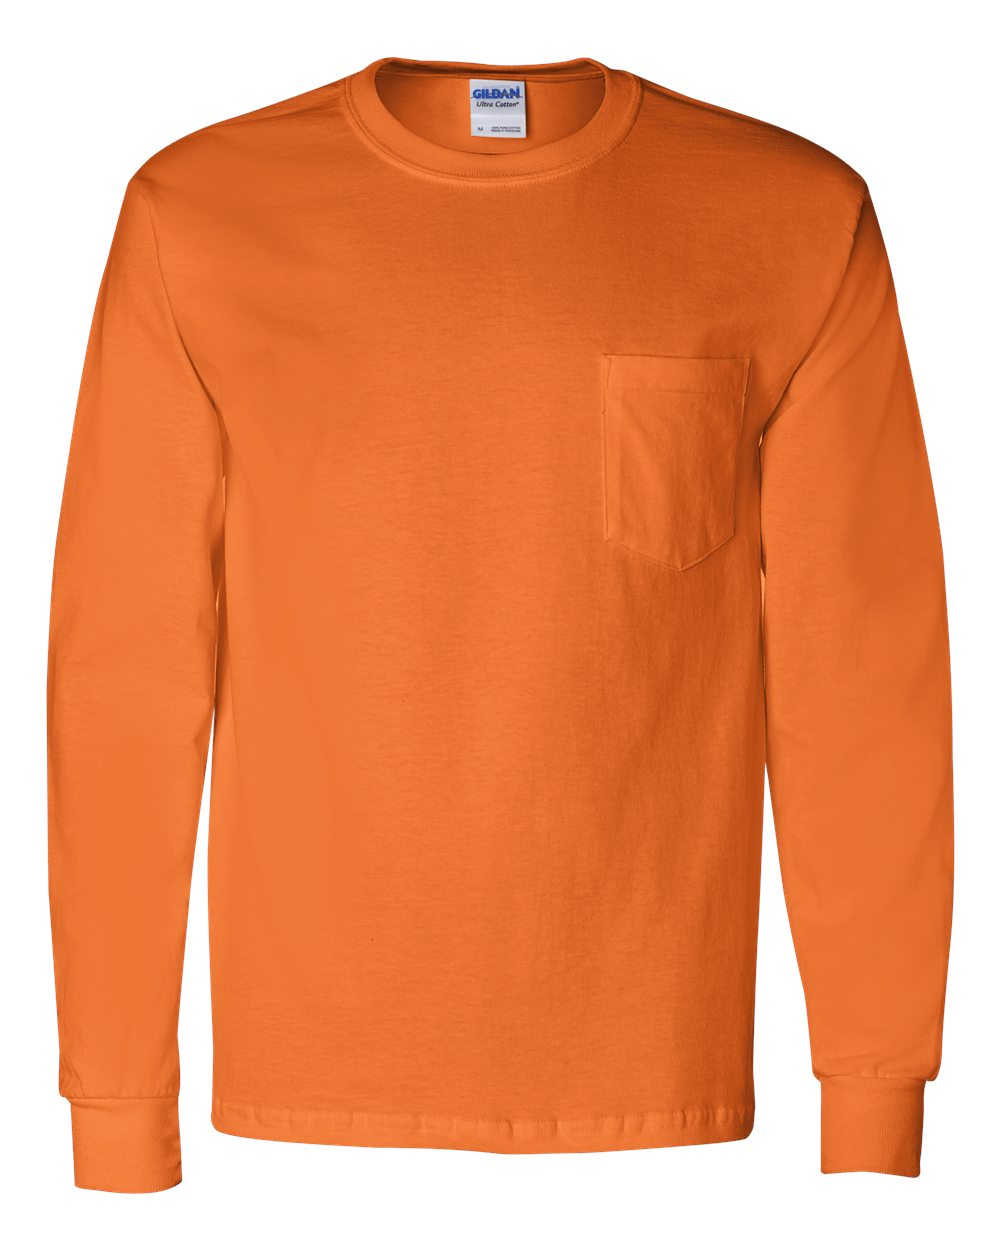 Gildan ultra cotton long sleeve t shirt with a pocket 2410 ebay - Gildan Ultra Cotton Long Sleeve T Shirt With